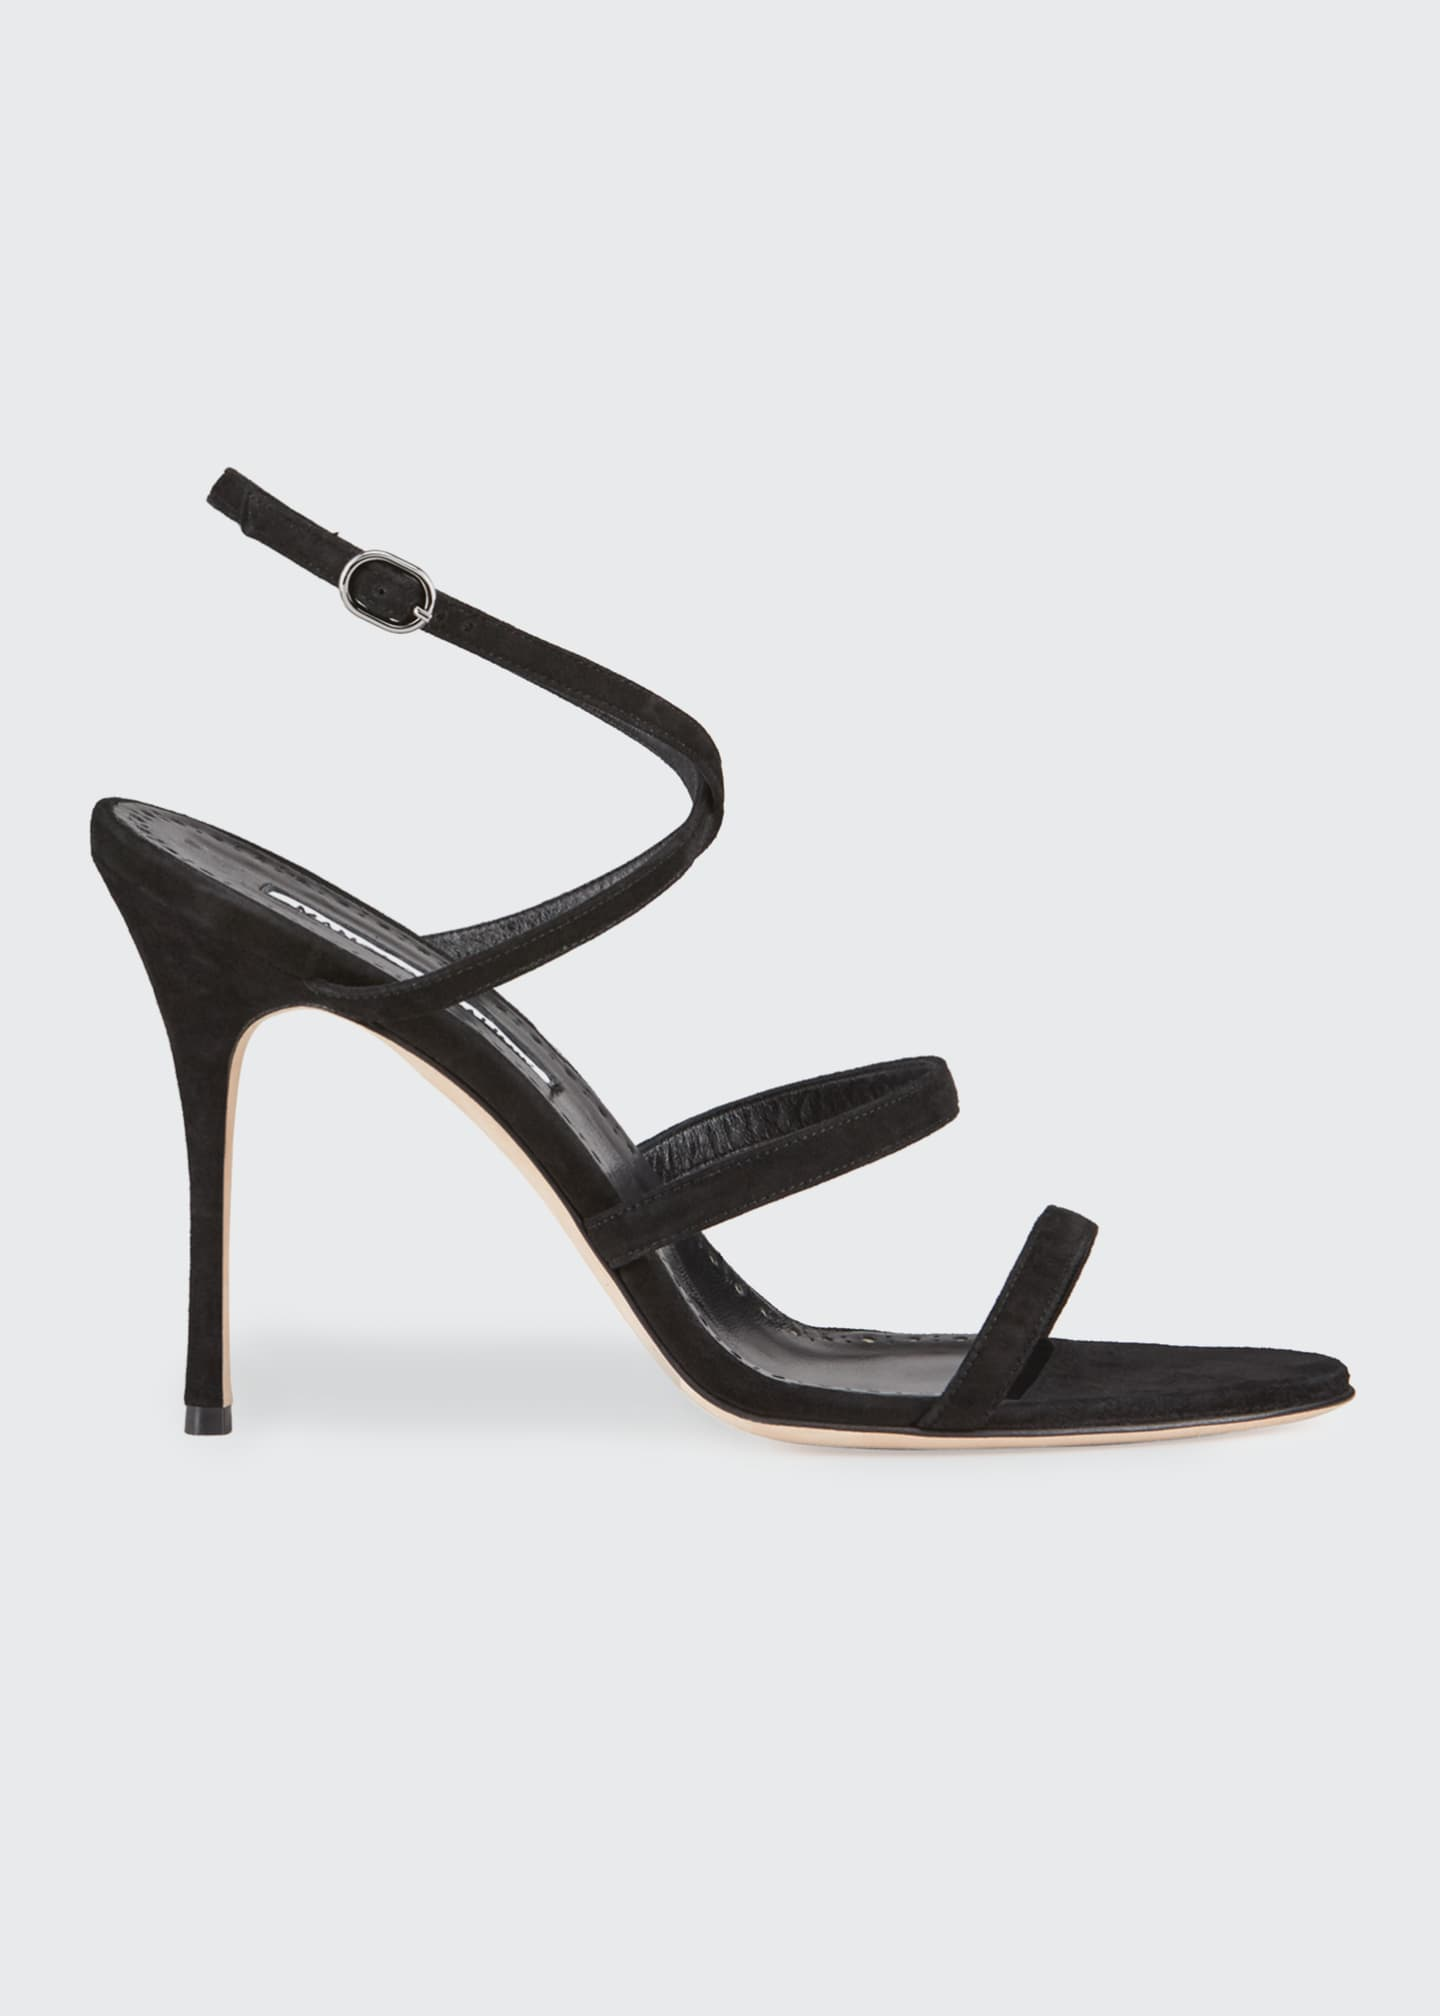 Image 1 of 3: Bacca Suede Strappy Stiletto Sandals